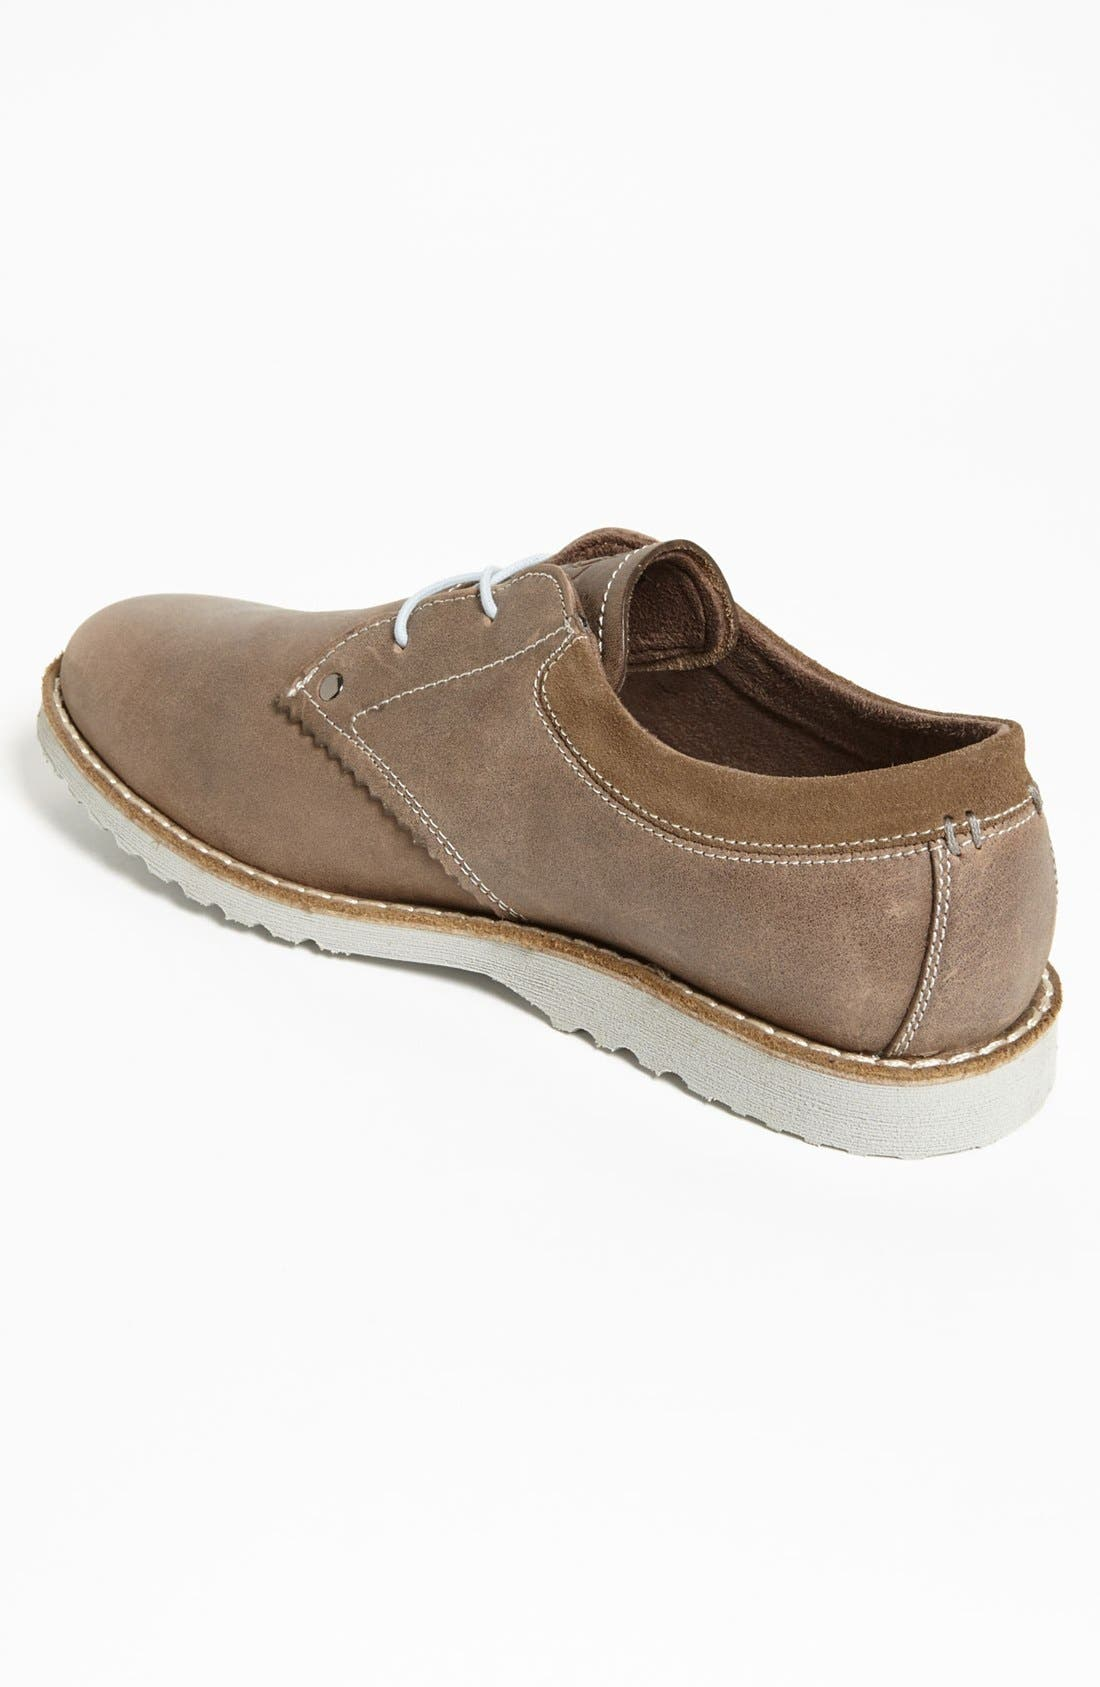 Alternate Image 2  - Original Penguin 'Jennings' Buck Shoe